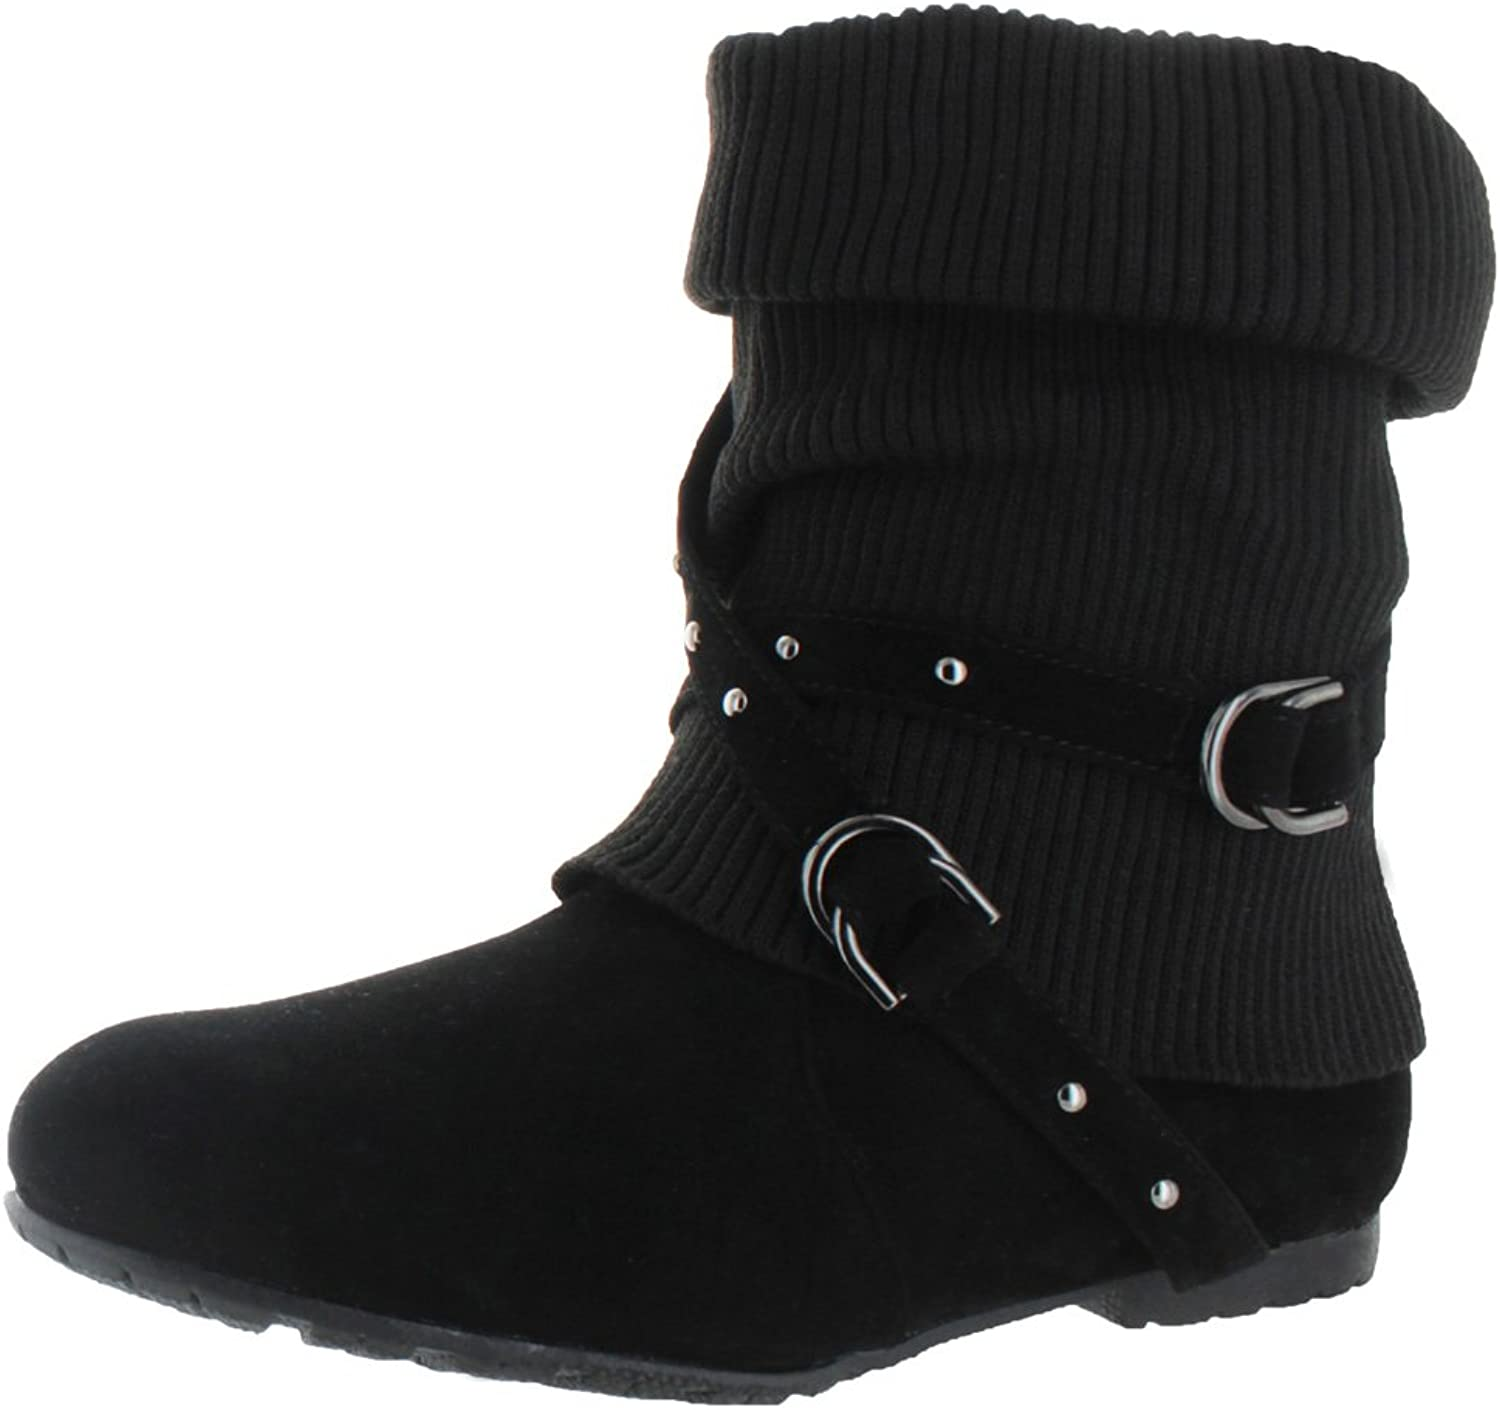 K Stores USA Womens Ankle Boots Slouch Knitted Suede Cross Strap Buckles